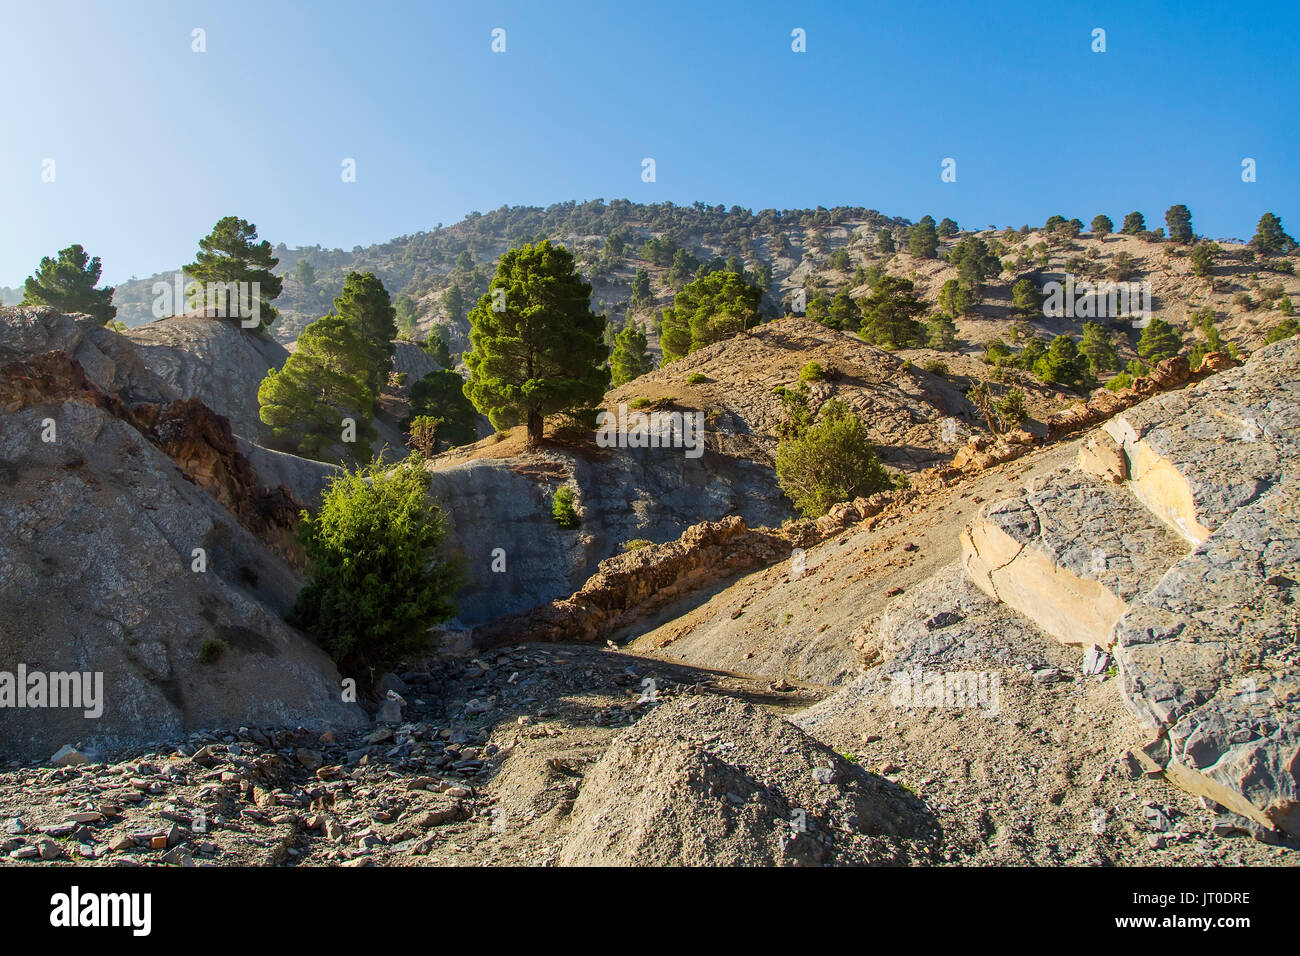 Pine and mountain landscape. High Atlas. Morocco, Maghreb North Africa - Stock Image